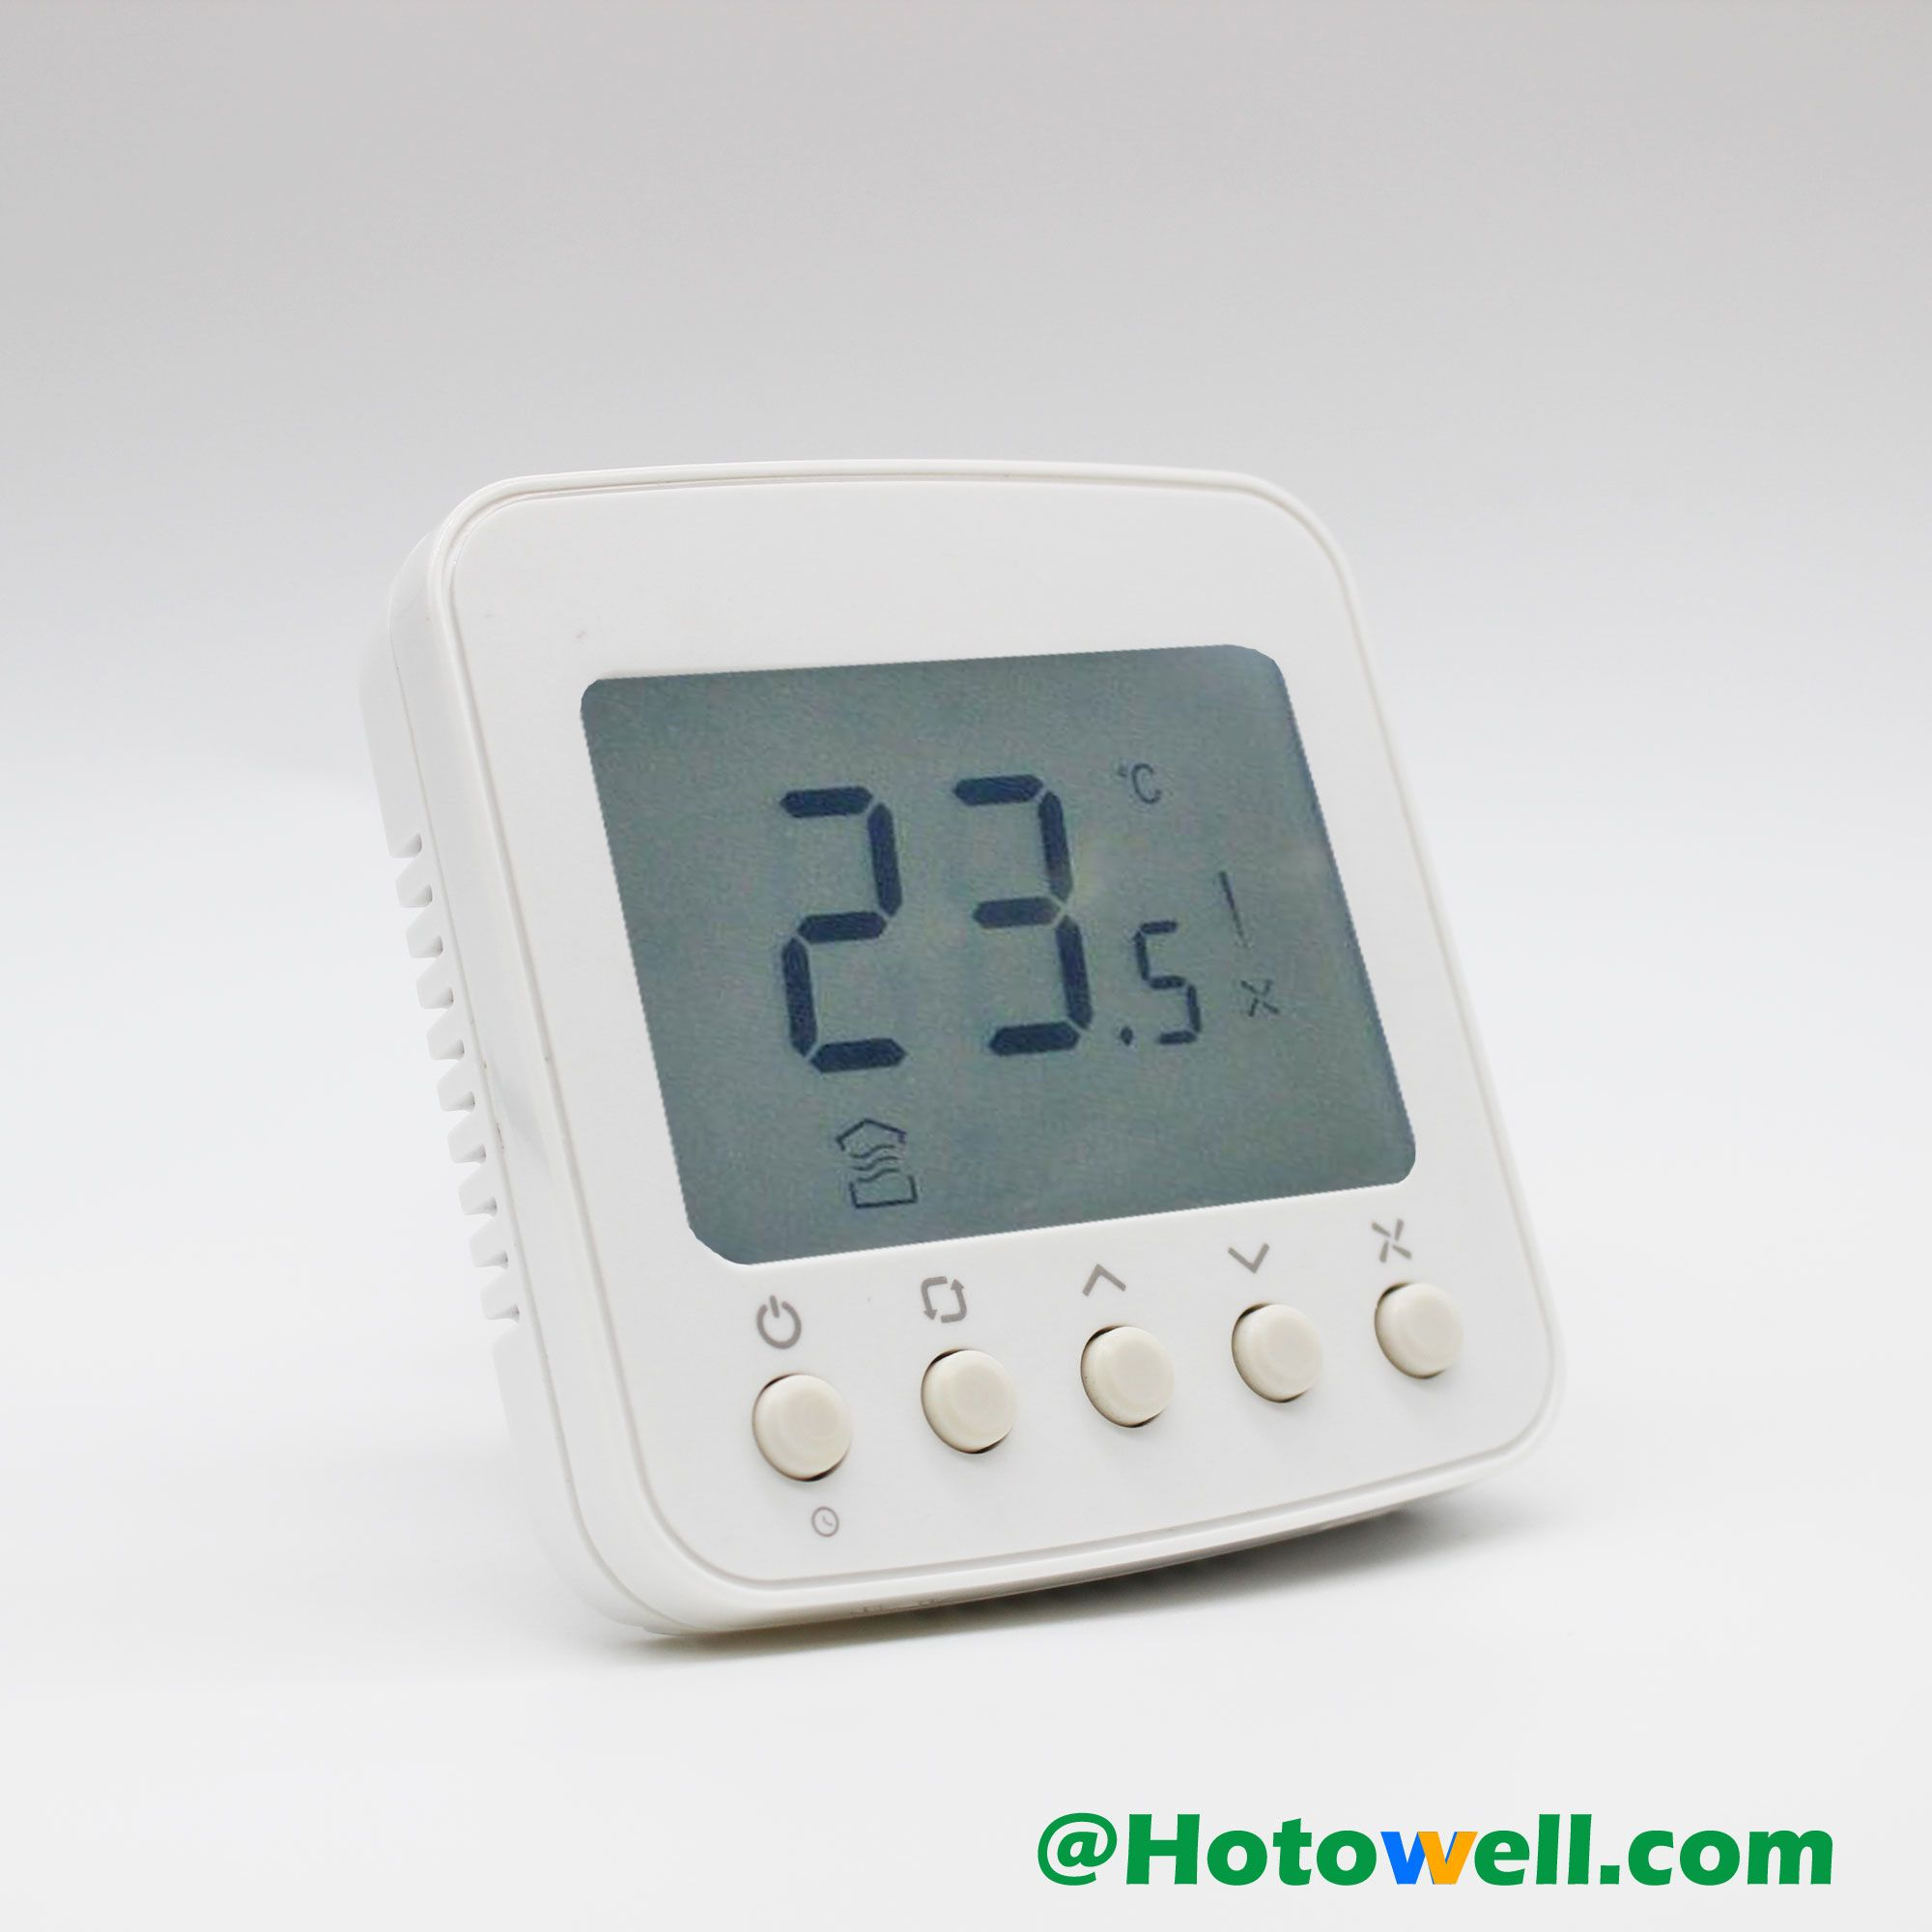 The Tf228wn Digital Thermostat Is Designed For 3 Speed Fan And